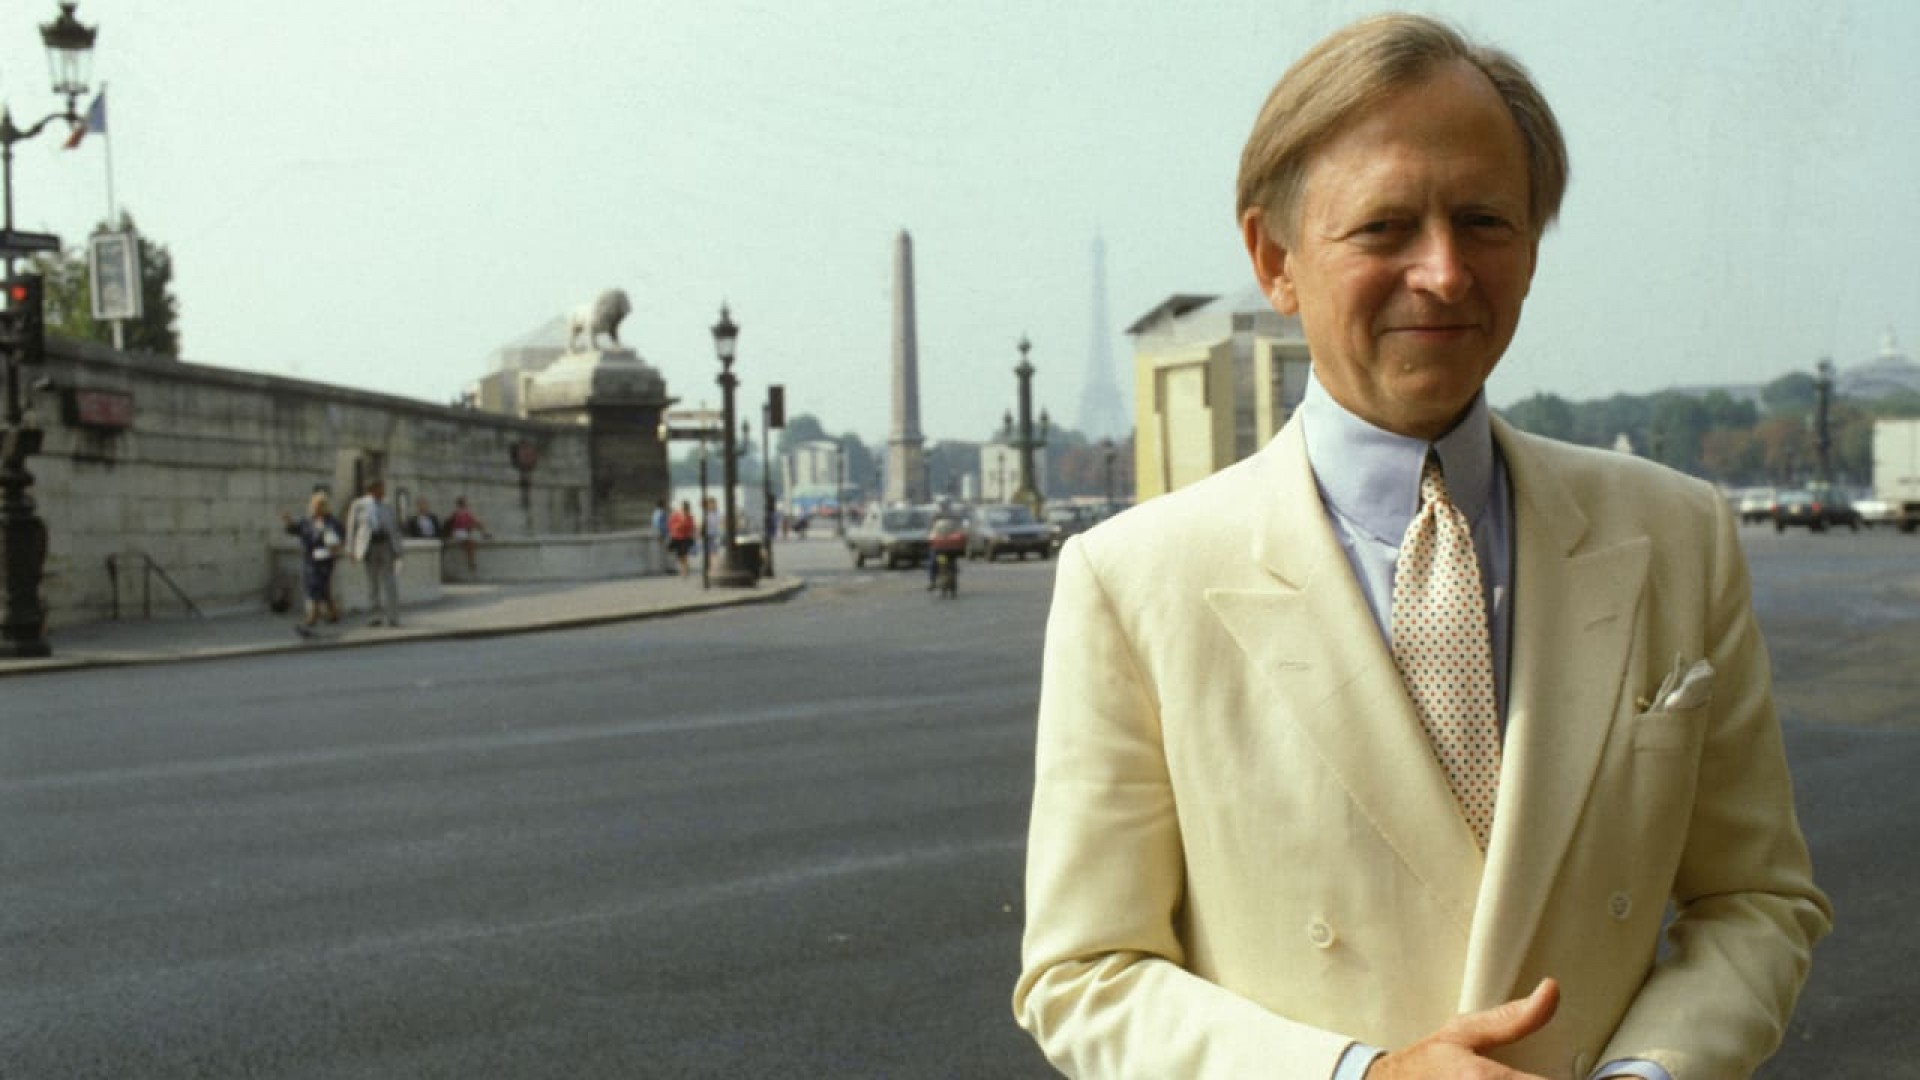 020 Essay Example Tom Wolfe Essays P Has Passed Away Heres Some Of His Best Quotes Impressive That Popularized A Phrase 70s 1920